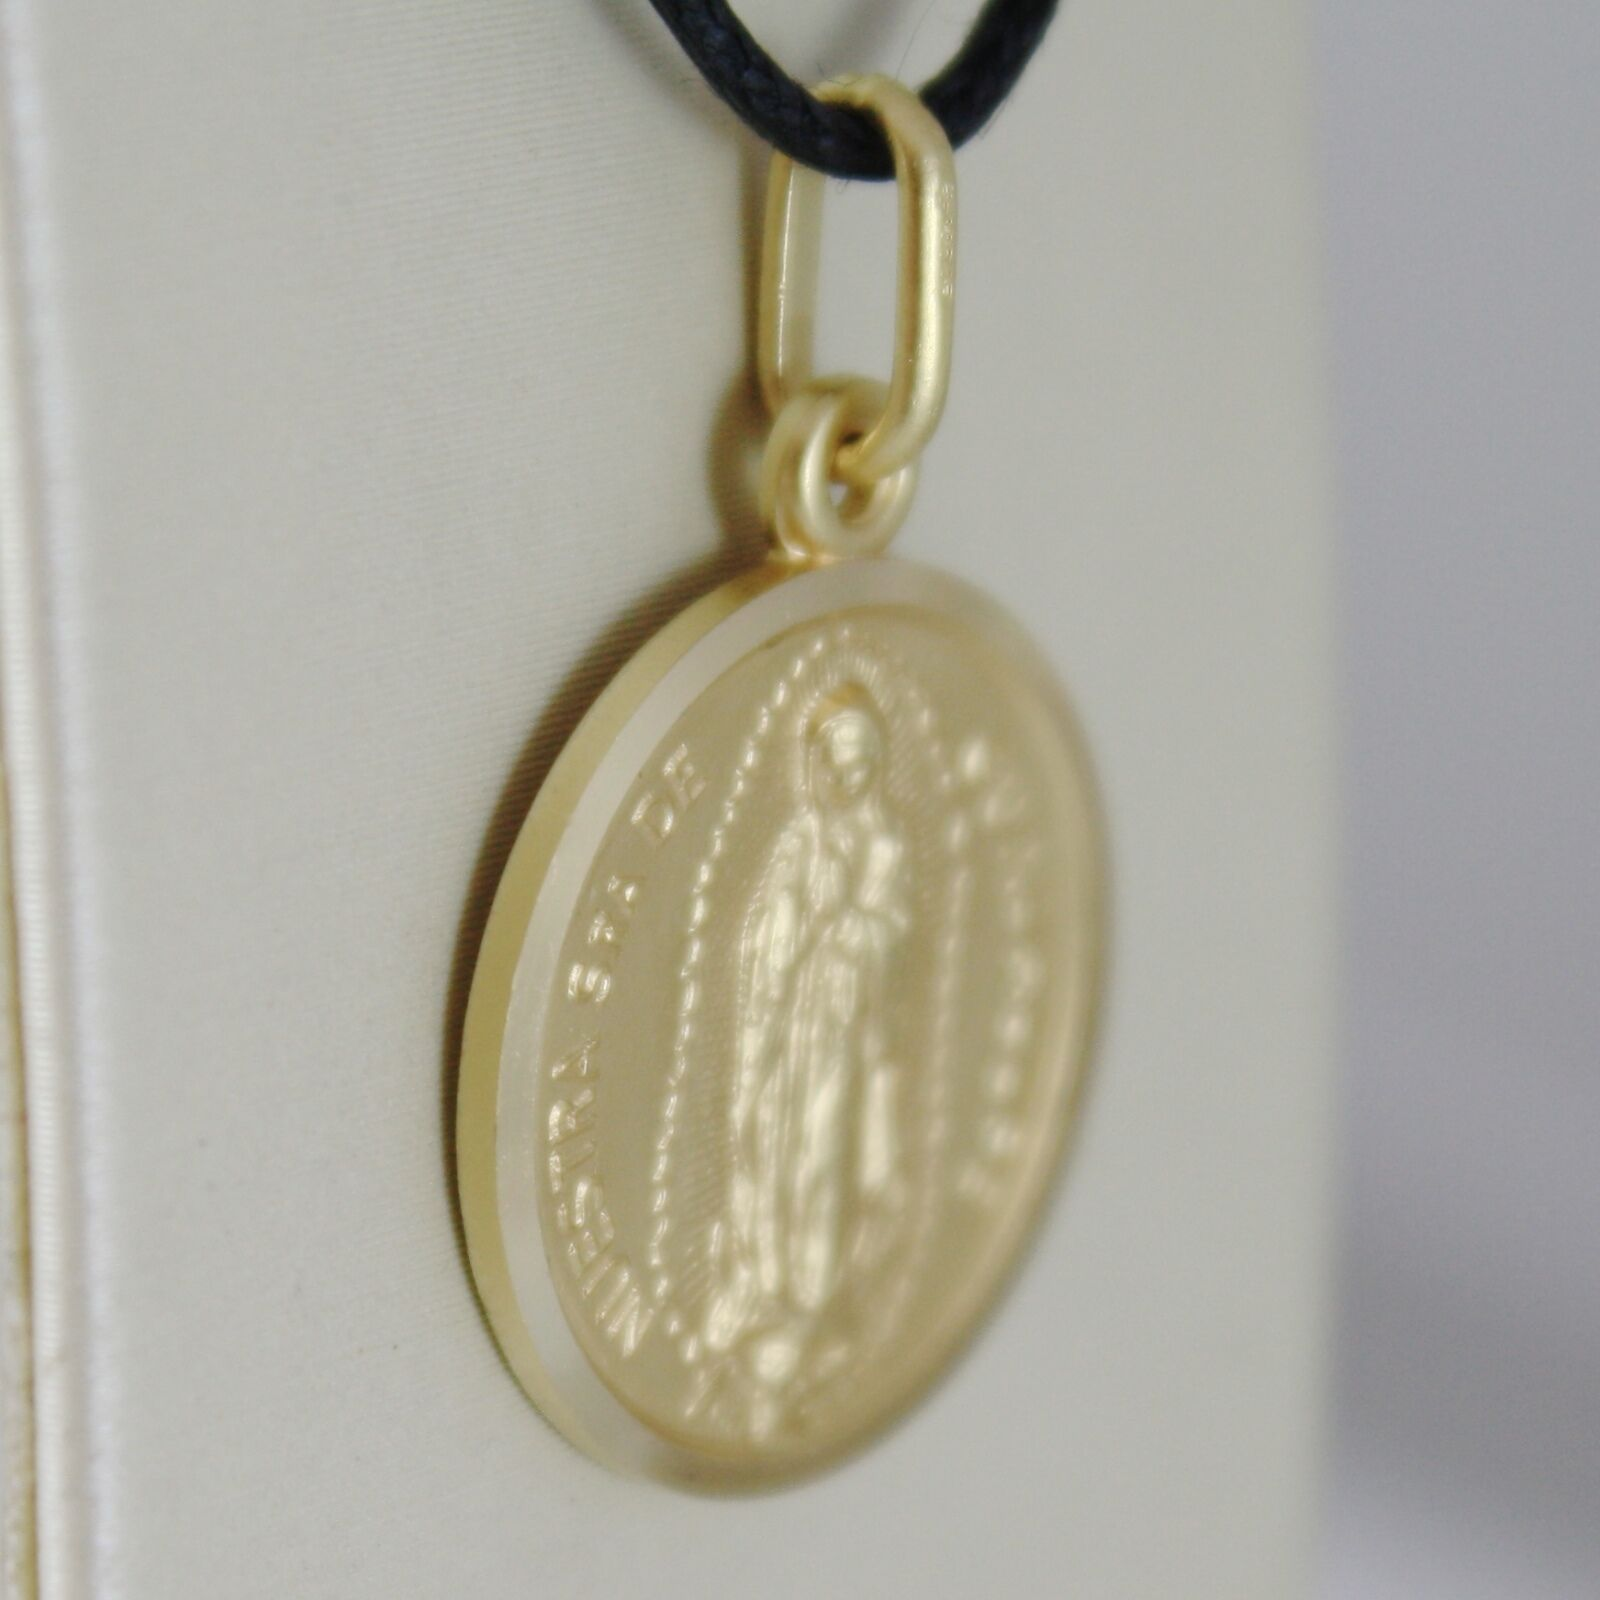 SOLID 18K YELLOW GOLD LADY OF GUADALUPE 17 MM ROUND MEDAL, MADE IN ITALY